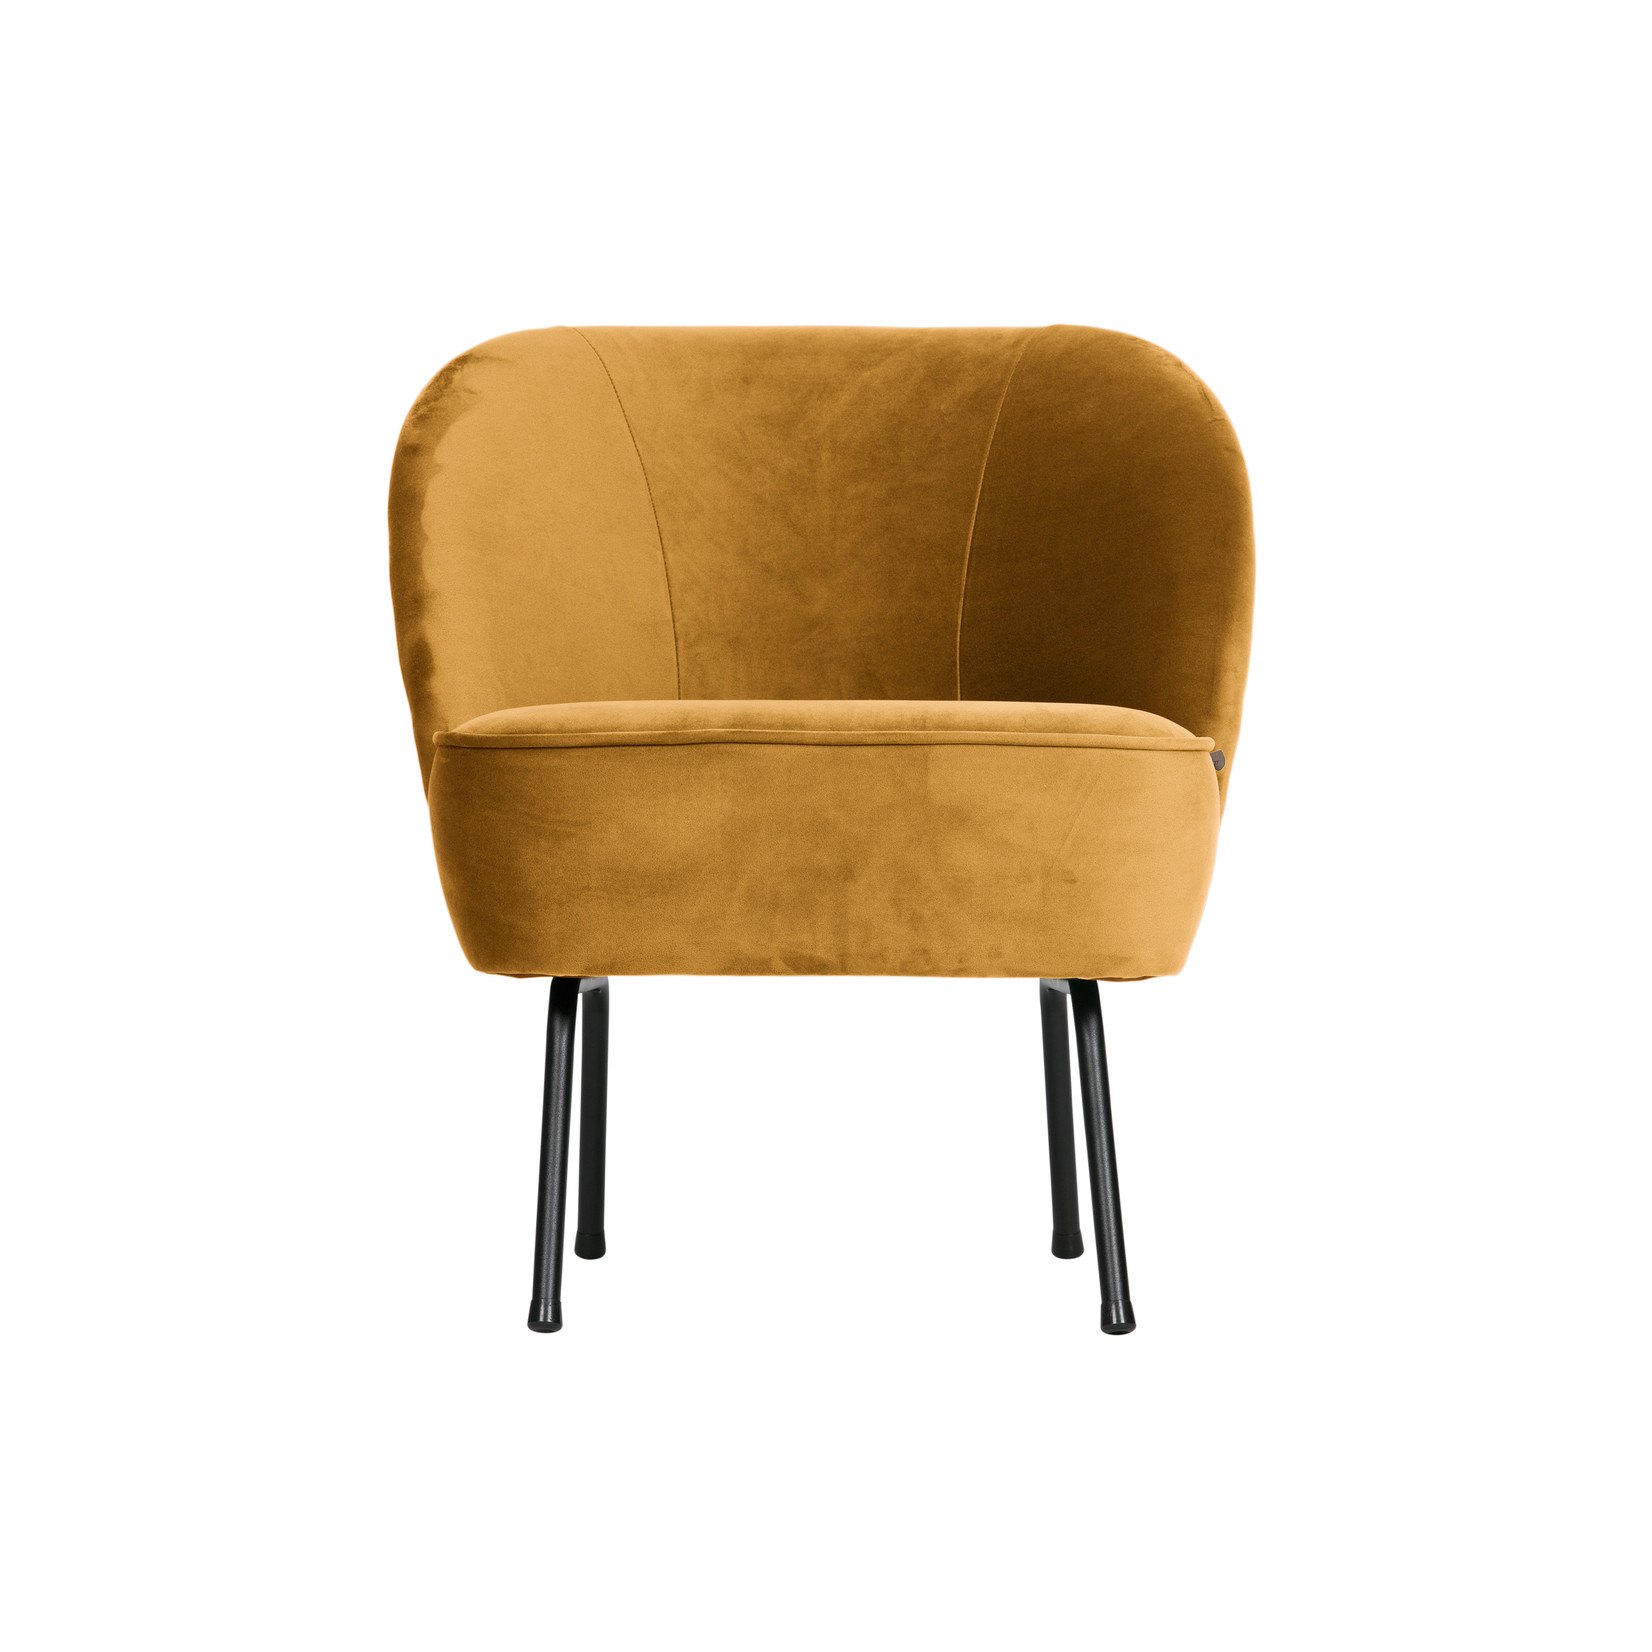 Be Pure Home Vogue Fauteuil Fluweel Mosterd